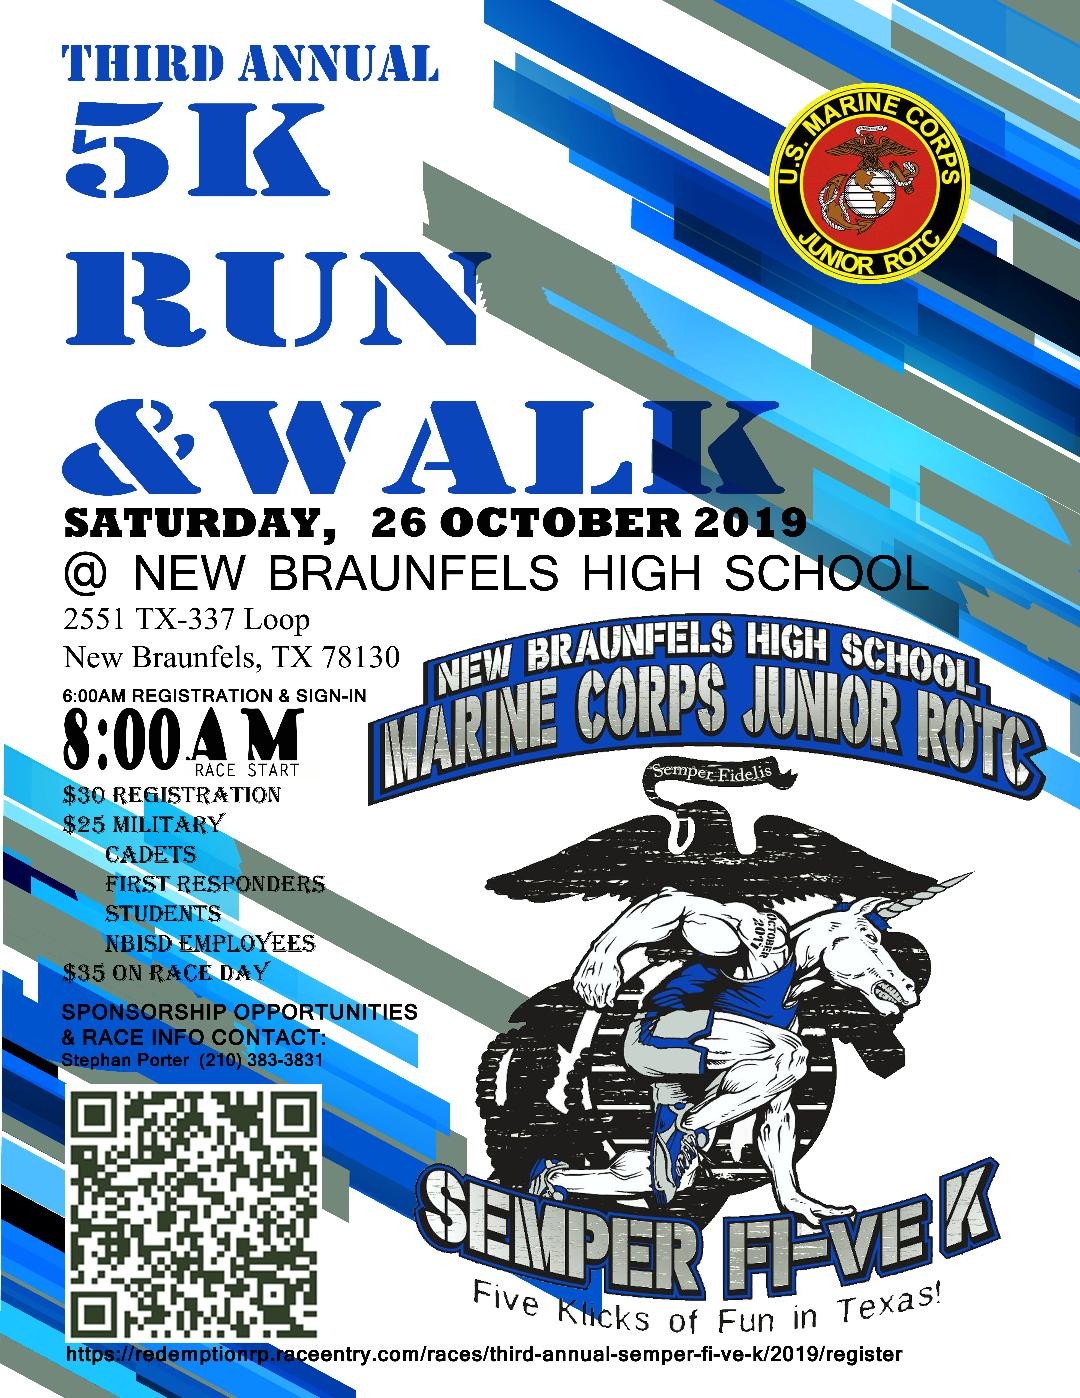 3rd Annual NBHS MC JROTC Semper Fi-ve K on Oct. 26